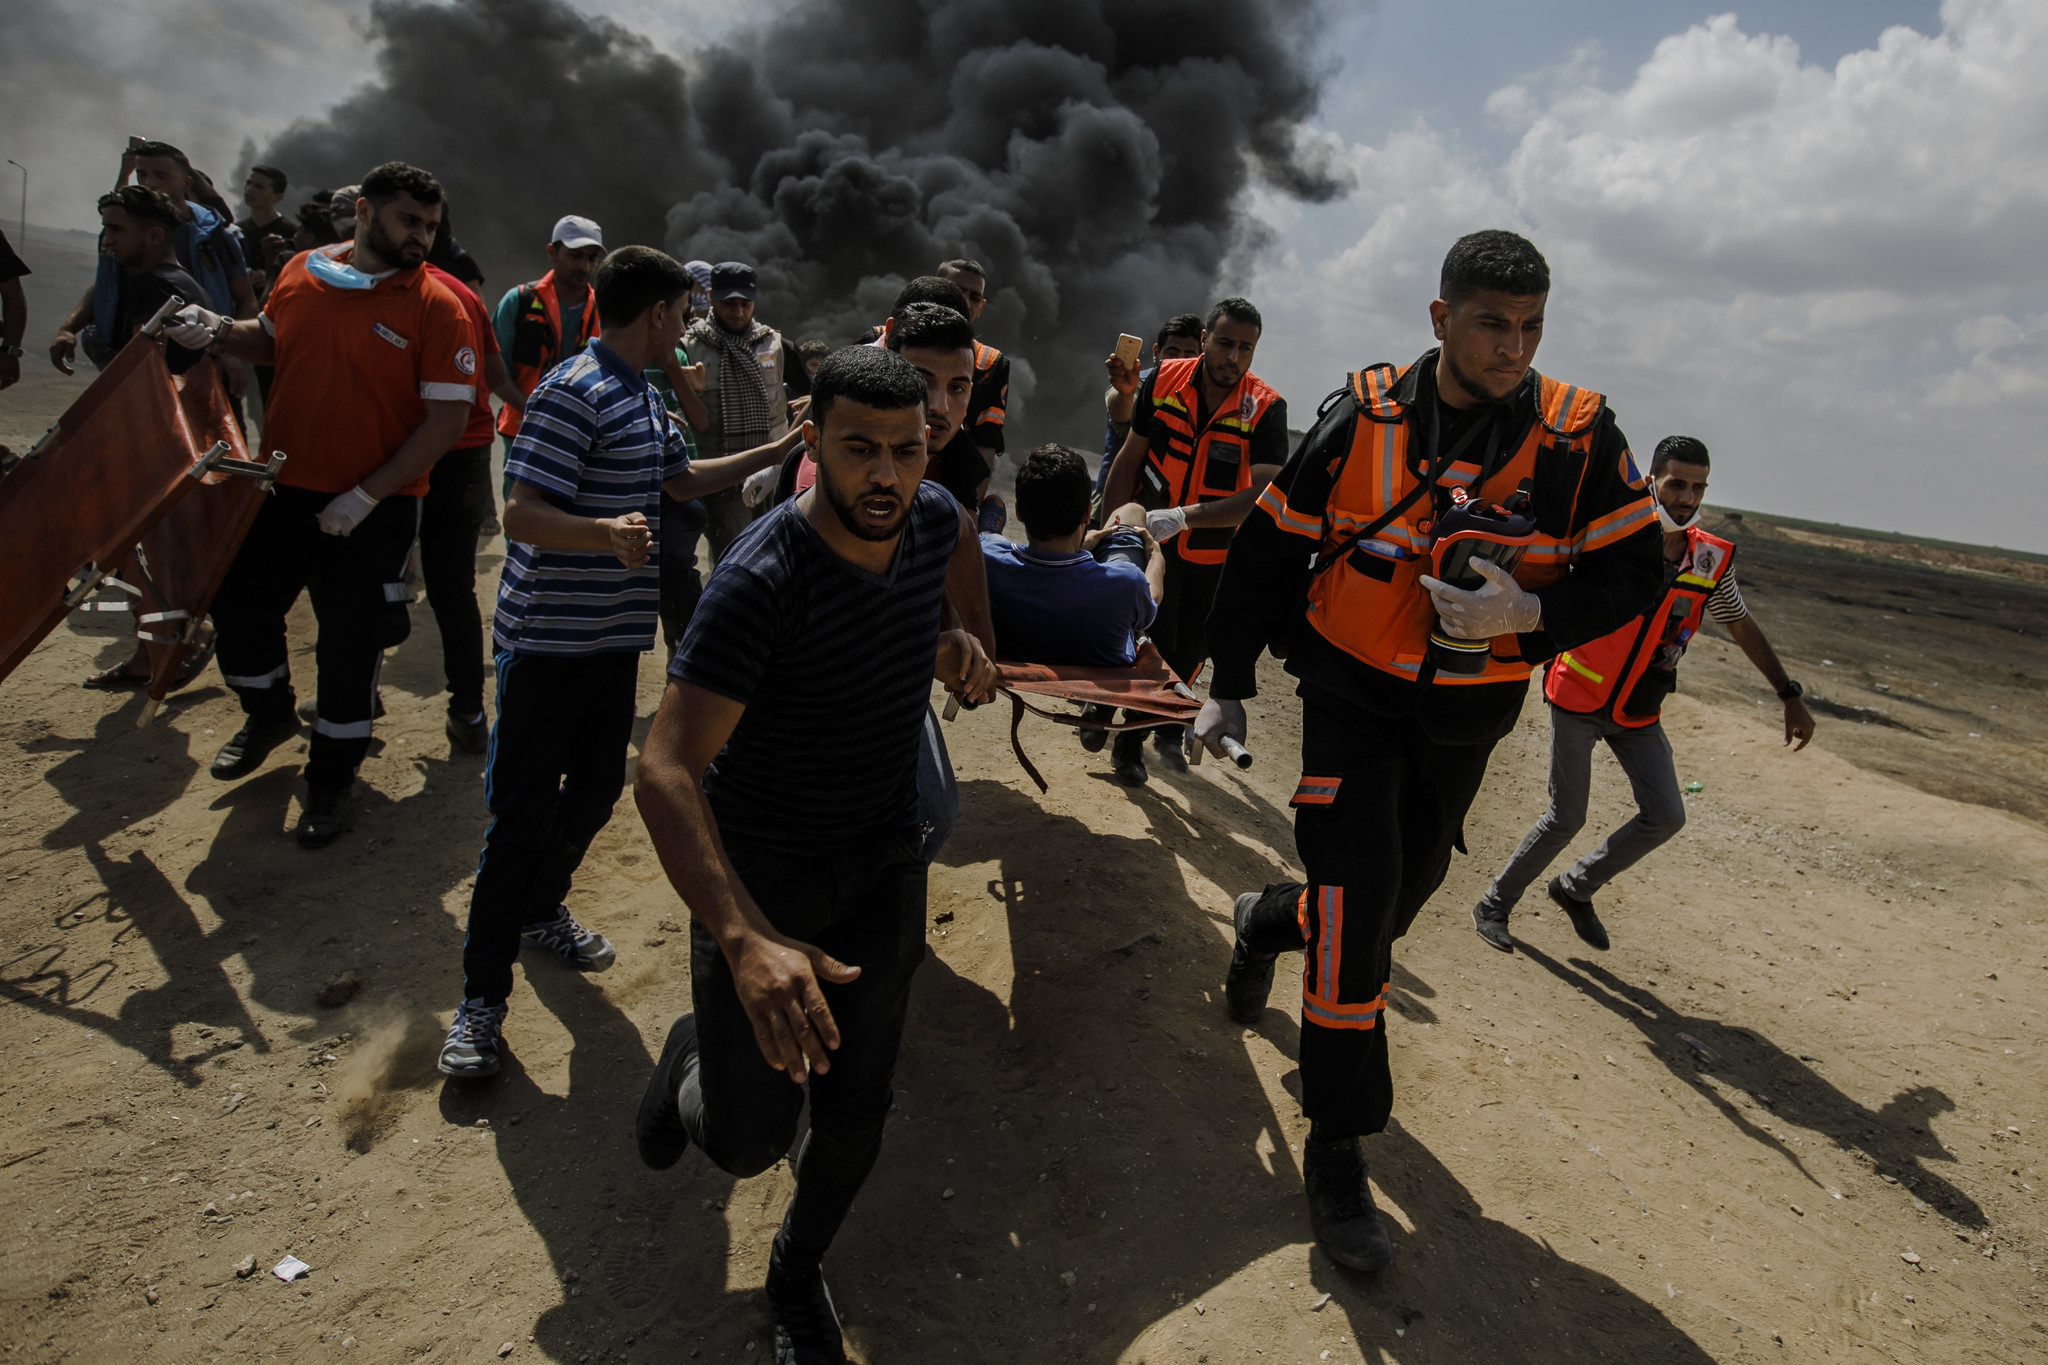 GAZA CITY, GAZA — MONDAY, MAY 14, 2018: Medical units carry away a wounded Palestinian shot by Isra